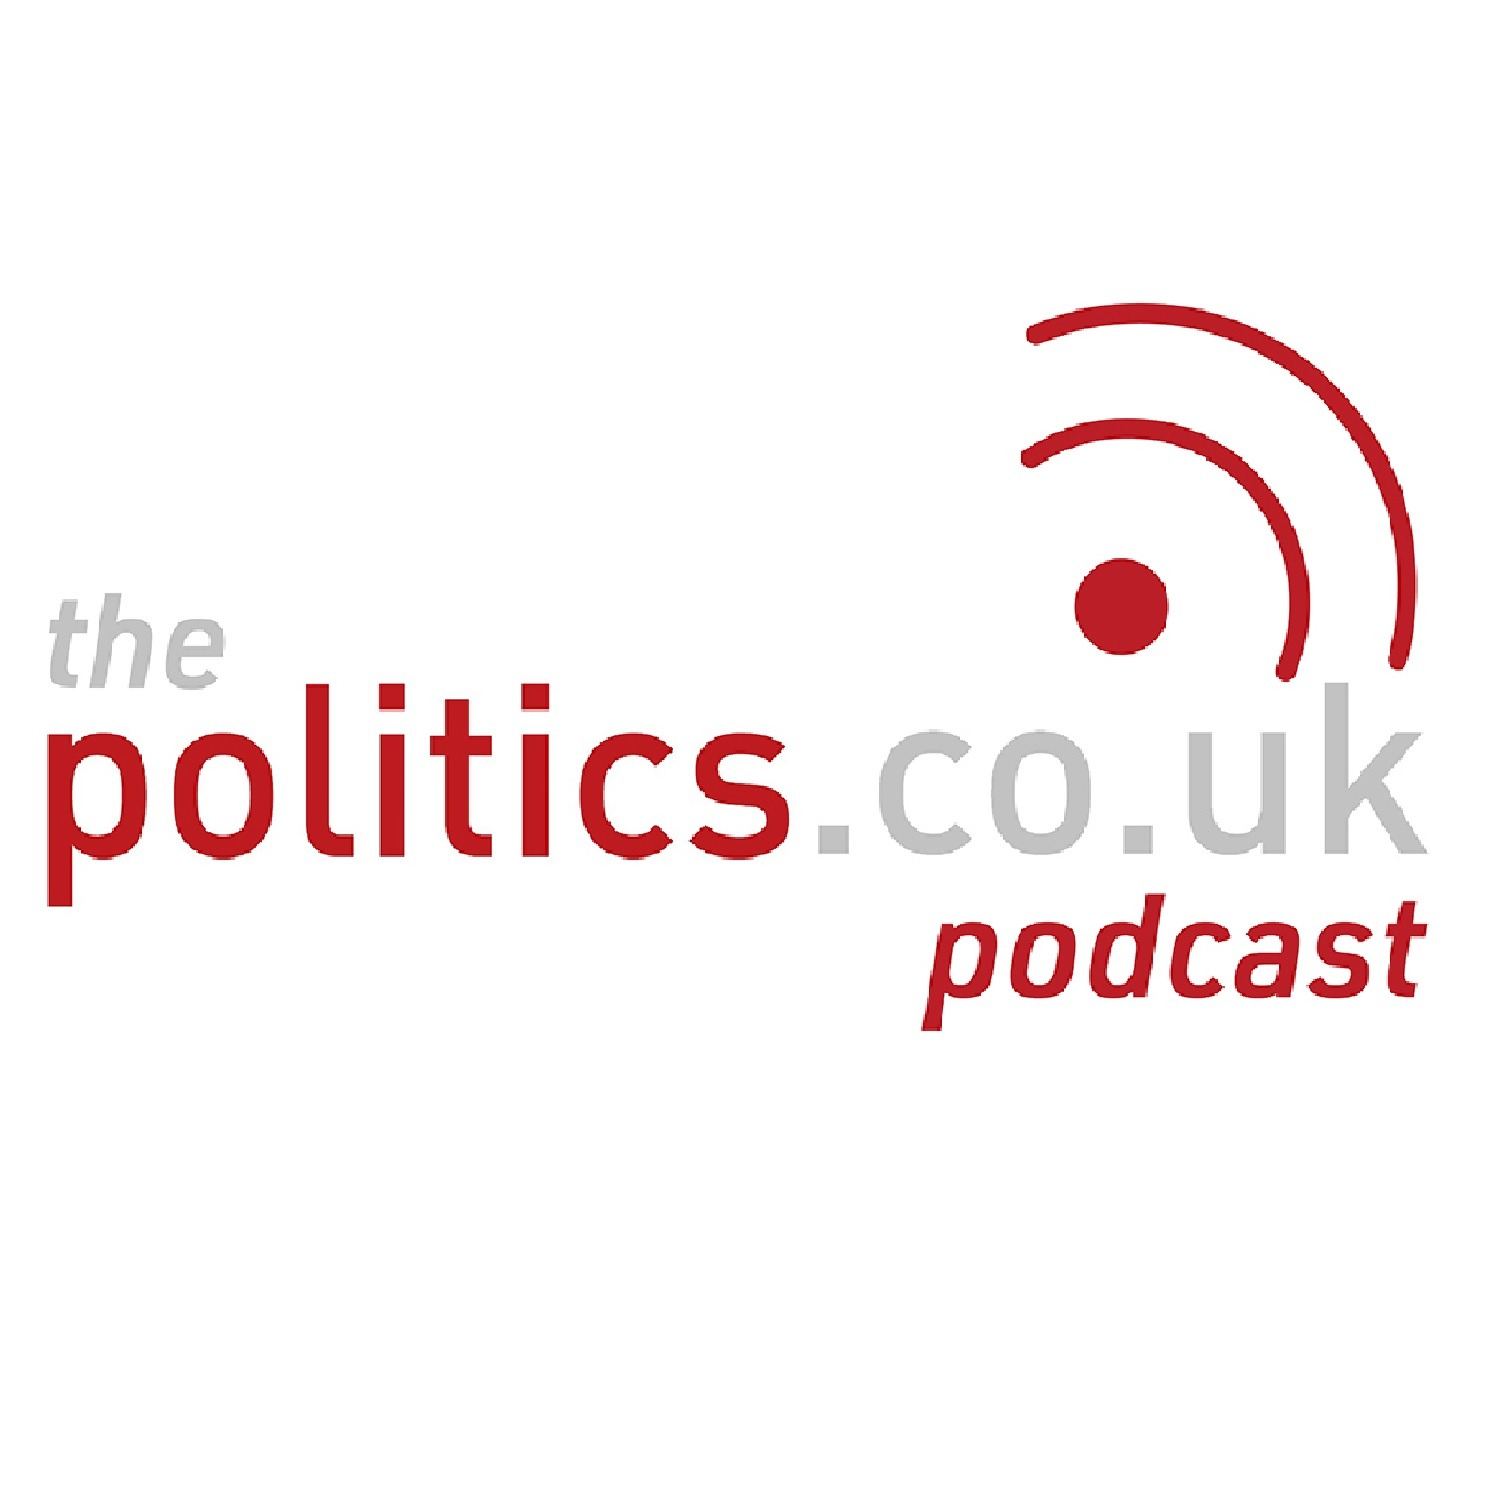 The Politics.co.uk Podcast - vaping